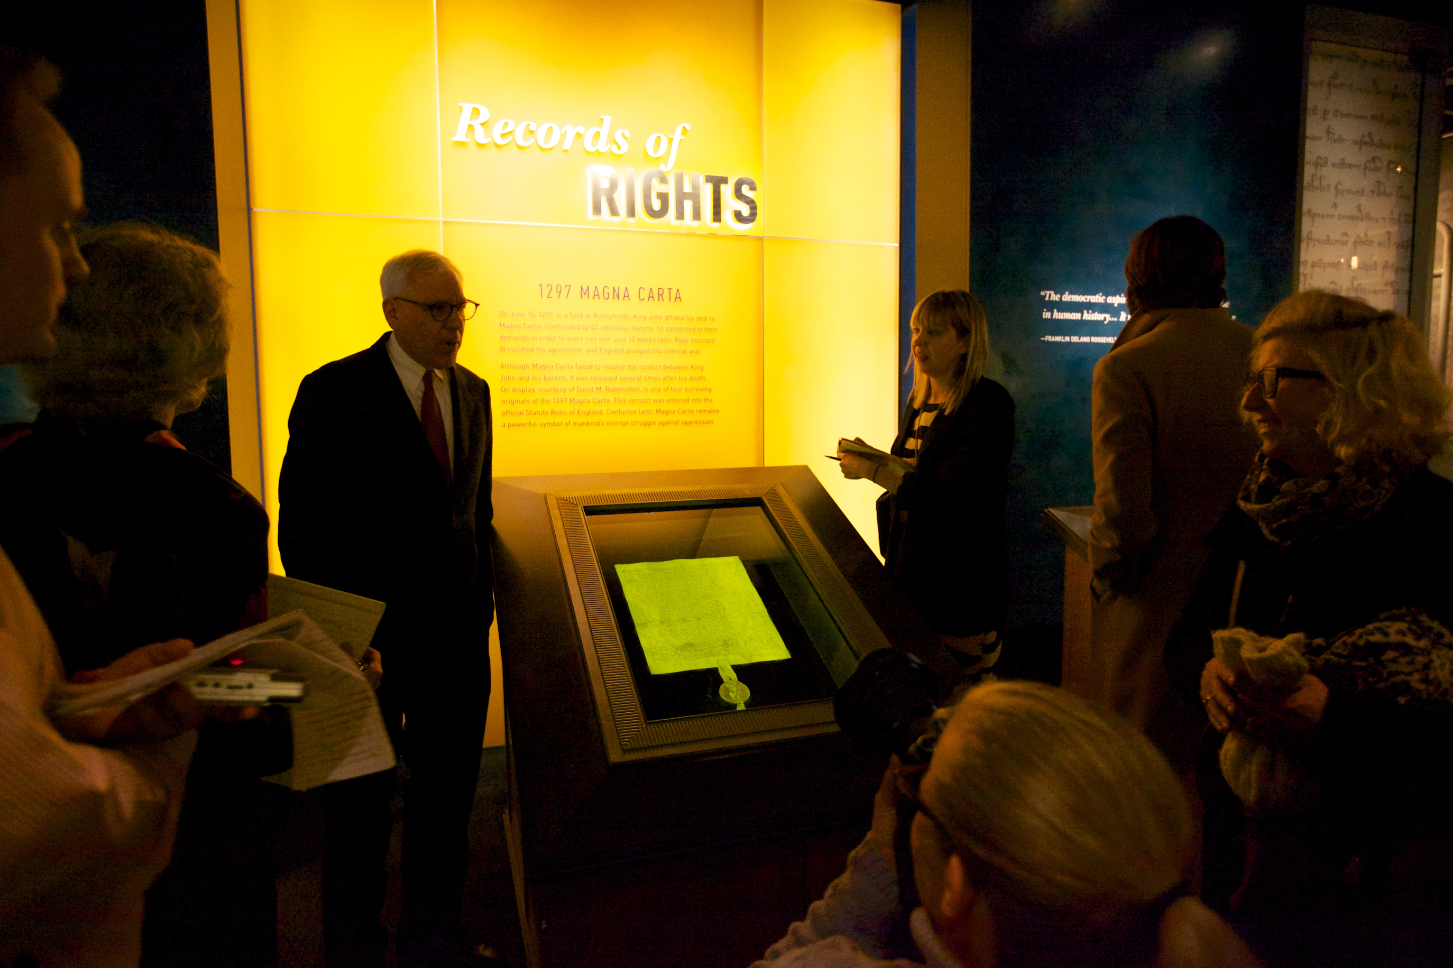 David M. Rubenstein and Magna Carta